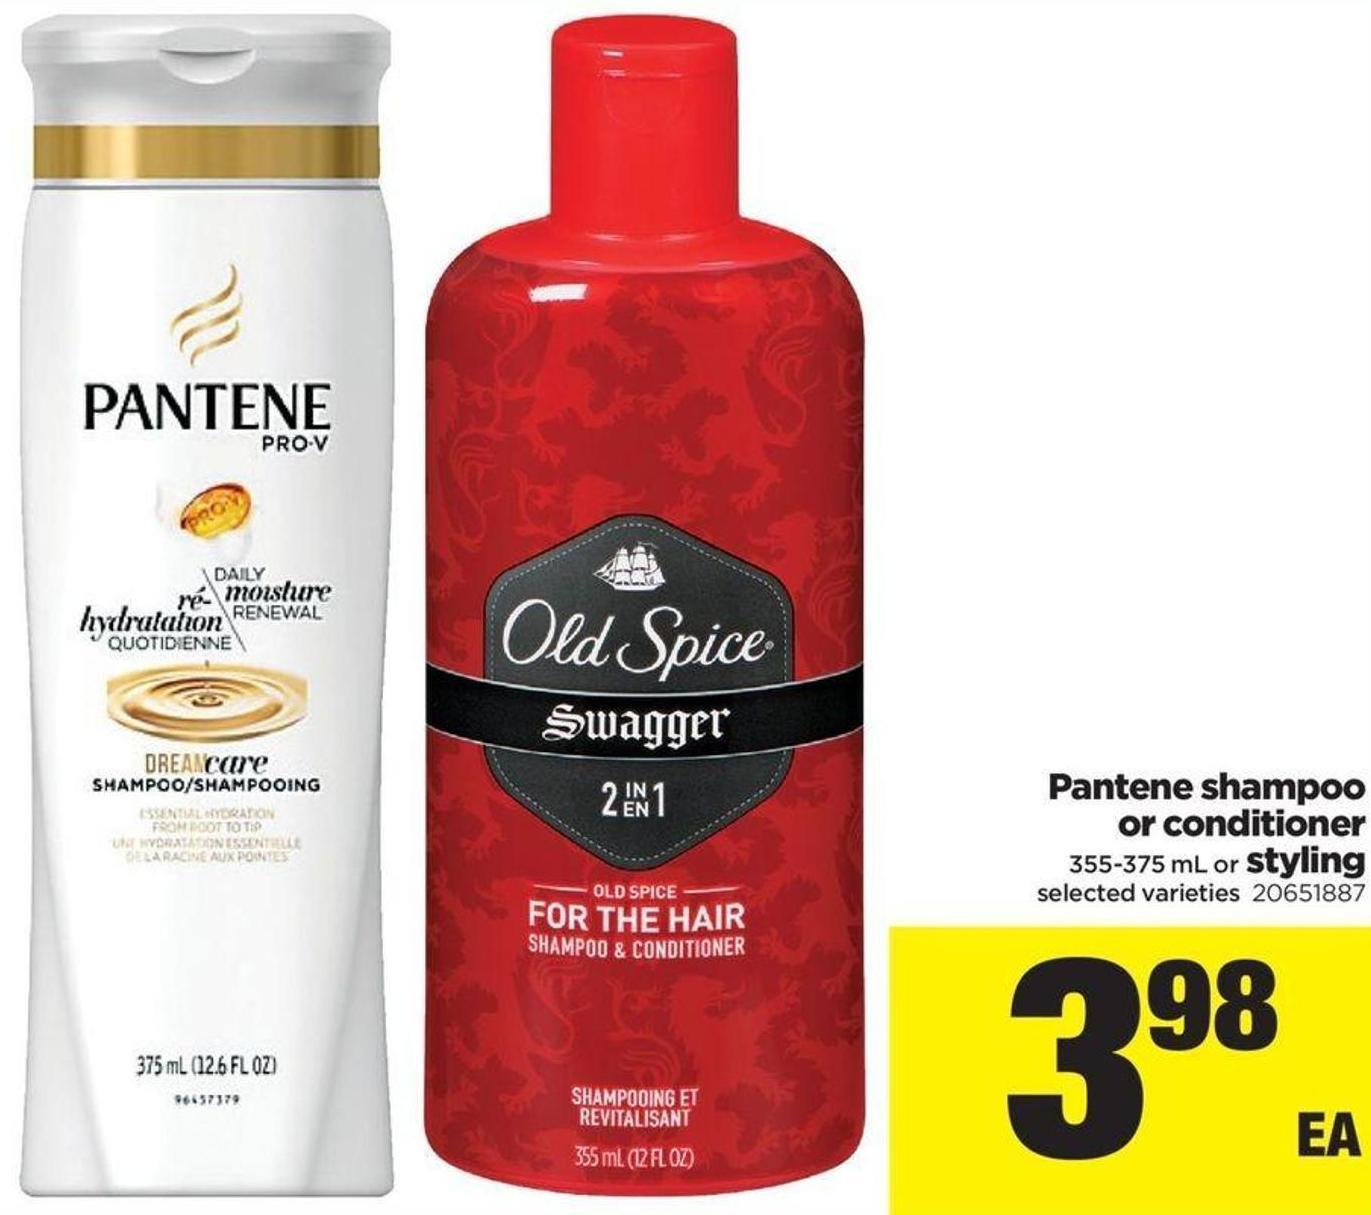 Pantene Shampoo Or Conditioner - 355-375 mL or Styling